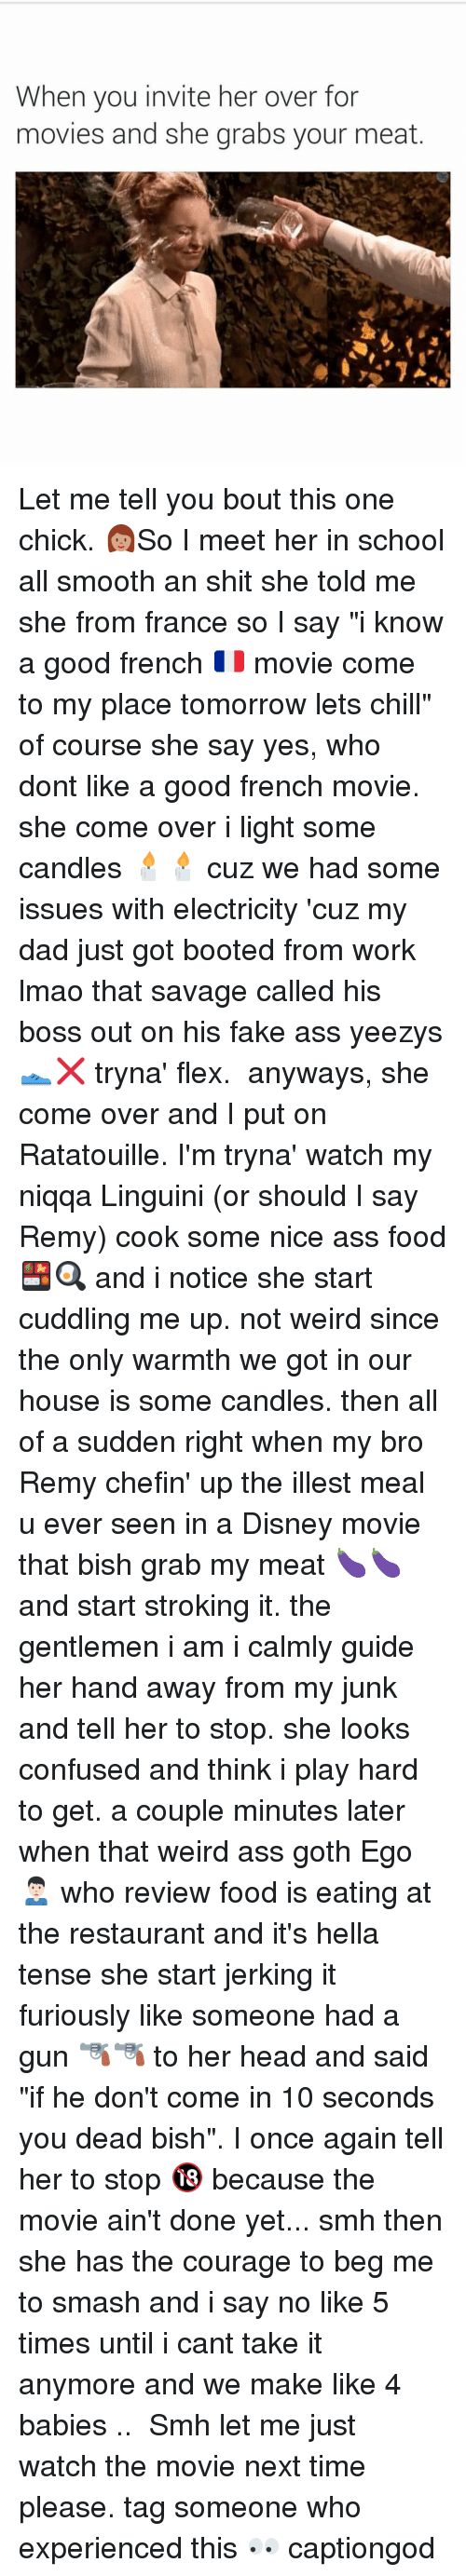 """Come Over, Flexing, and Funny: When you invite her over for  movies and she grabs your meat Let me tell you bout this one chick. 👩🏽So I meet her in school all smooth an shit she told me she from france so I say """"i know a good french 🇫🇷 movie come to my place tomorrow lets chill"""" of course she say yes, who dont like a good french movie. she come over i light some candles 🕯🕯 cuz we had some issues with electricity 'cuz my dad just got booted from work lmao that savage called his boss out on his fake ass yeezys 👟❌ tryna' flex. ⠀ anyways, she come over and I put on Ratatouille. I'm tryna' watch my niqqa Linguini (or should I say Remy) cook some nice ass food 🍱🍳 and i notice she start cuddling me up. not weird since the only warmth we got in our house is some candles. then all of a sudden right when my bro Remy chefin' up the illest meal u ever seen in a Disney movie that bish grab my meat 🍆🍆 and start stroking it. the gentlemen i am i calmly guide her hand away from my junk and tell her to stop. she looks confused and think i play hard to get. a couple minutes later when that weird ass goth Ego 🙍🏻♂️ who review food is eating at the restaurant and it's hella tense she start jerking it furiously like someone had a gun 🔫🔫 to her head and said """"if he don't come in 10 seconds you dead bish"""". I once again tell her to stop 🔞 because the movie ain't done yet... smh then she has the courage to beg me to smash and i say no like 5 times until i cant take it anymore and we make like 4 babies .. ⠀ Smh let me just watch the movie next time please. tag someone who experienced this 👀 captiongod"""